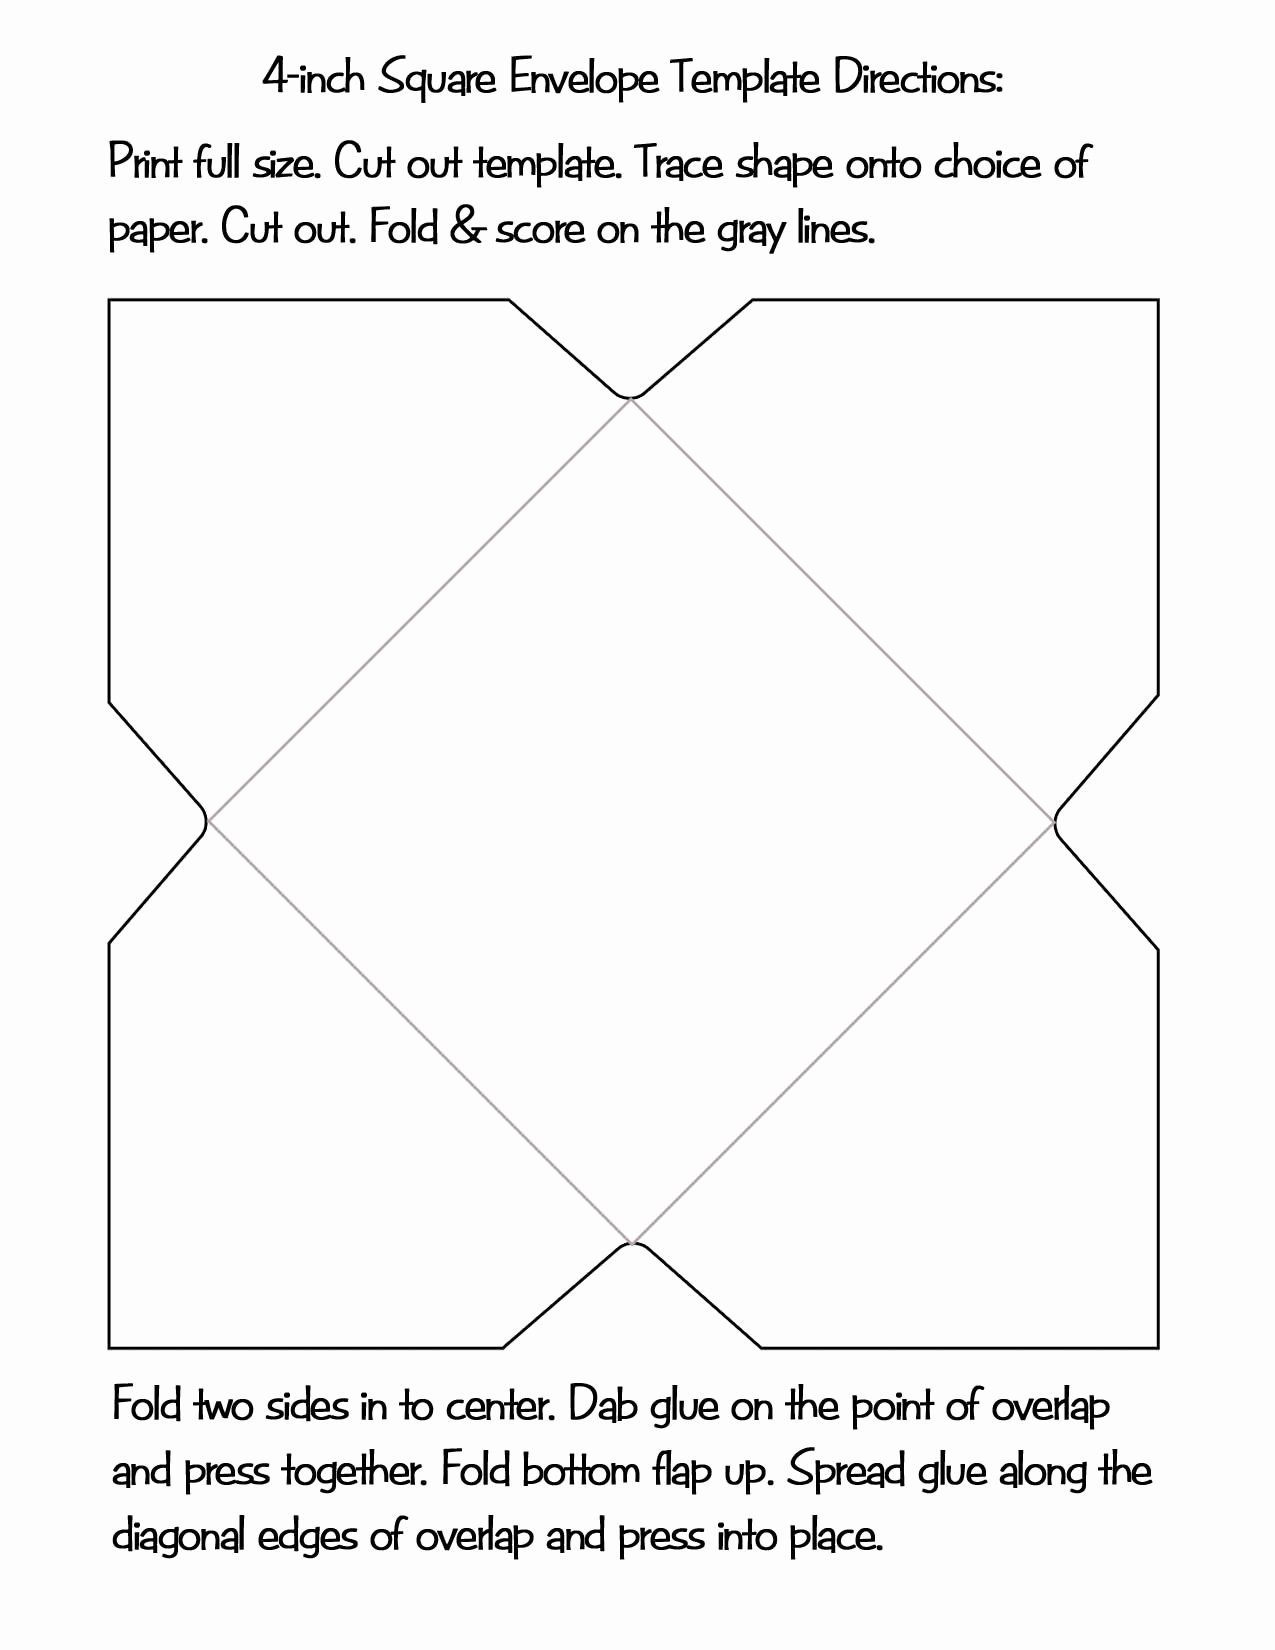 Gift Card Envelope Templates Unique Gift Ideas for Grownups Easy & Inexpensive the Artful